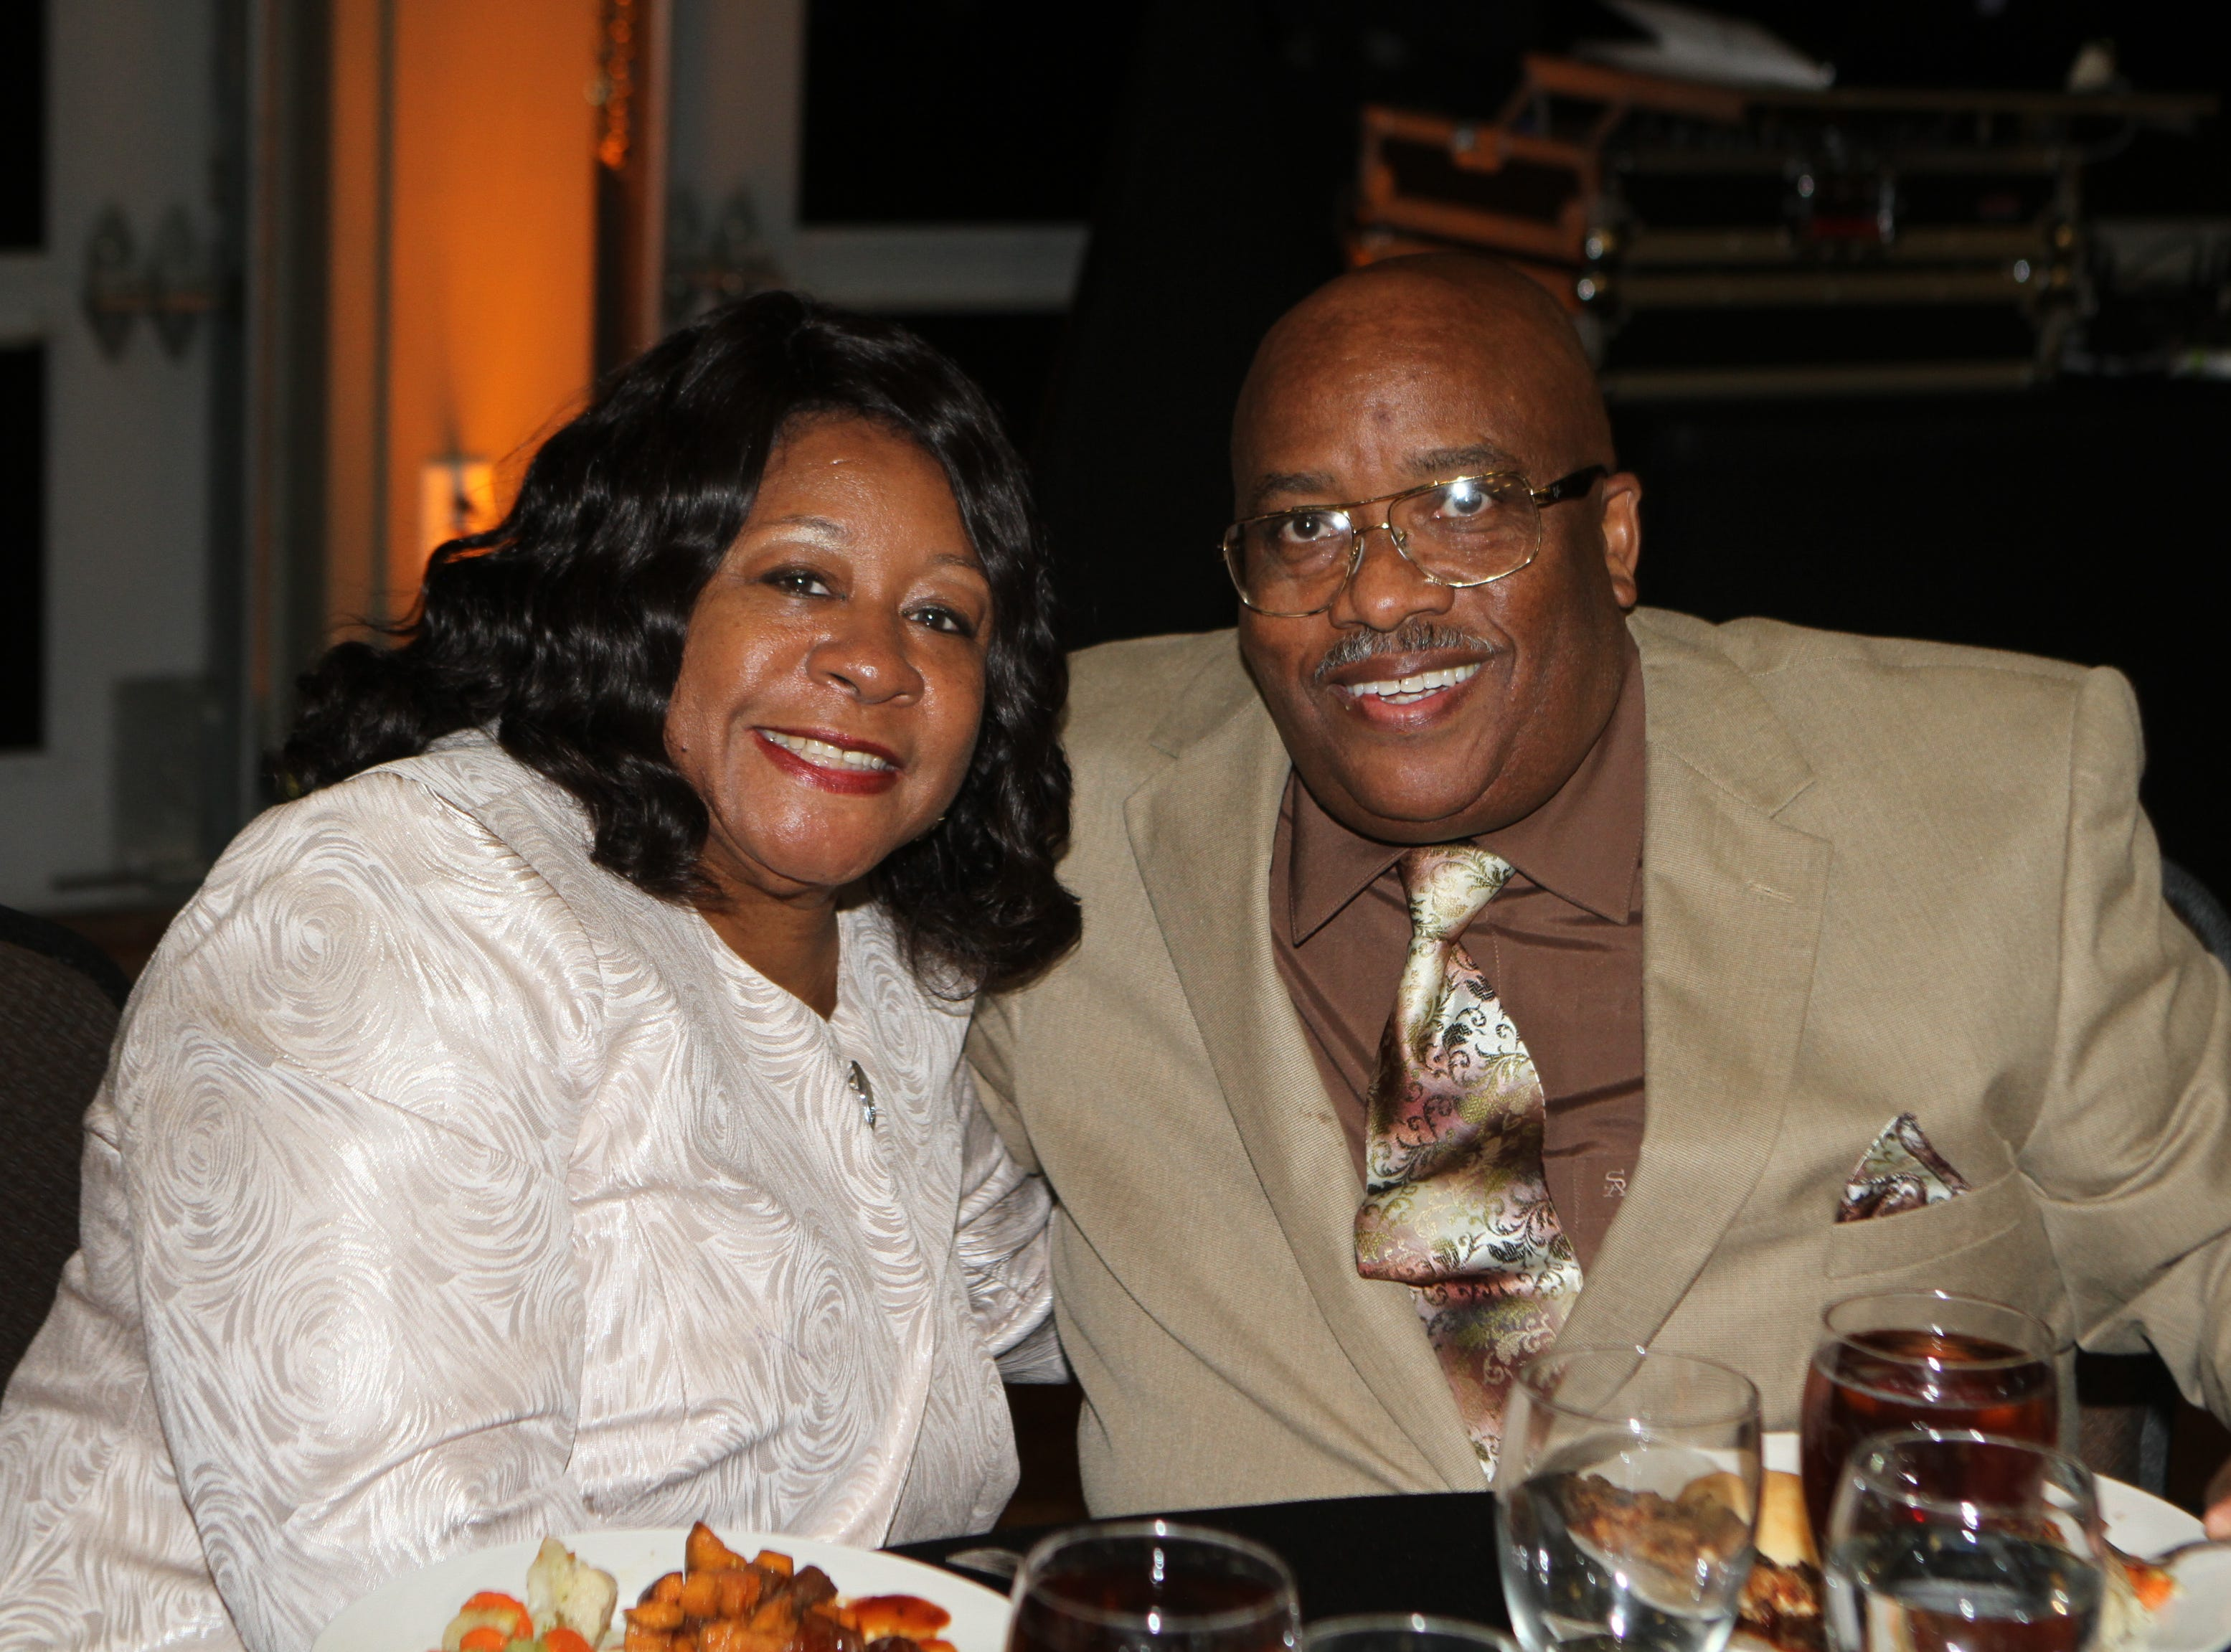 Carol and Ronnie Berry at CMC Education Foundation's annual fundraiser Vision to Reality on Friday, November 2, 2018